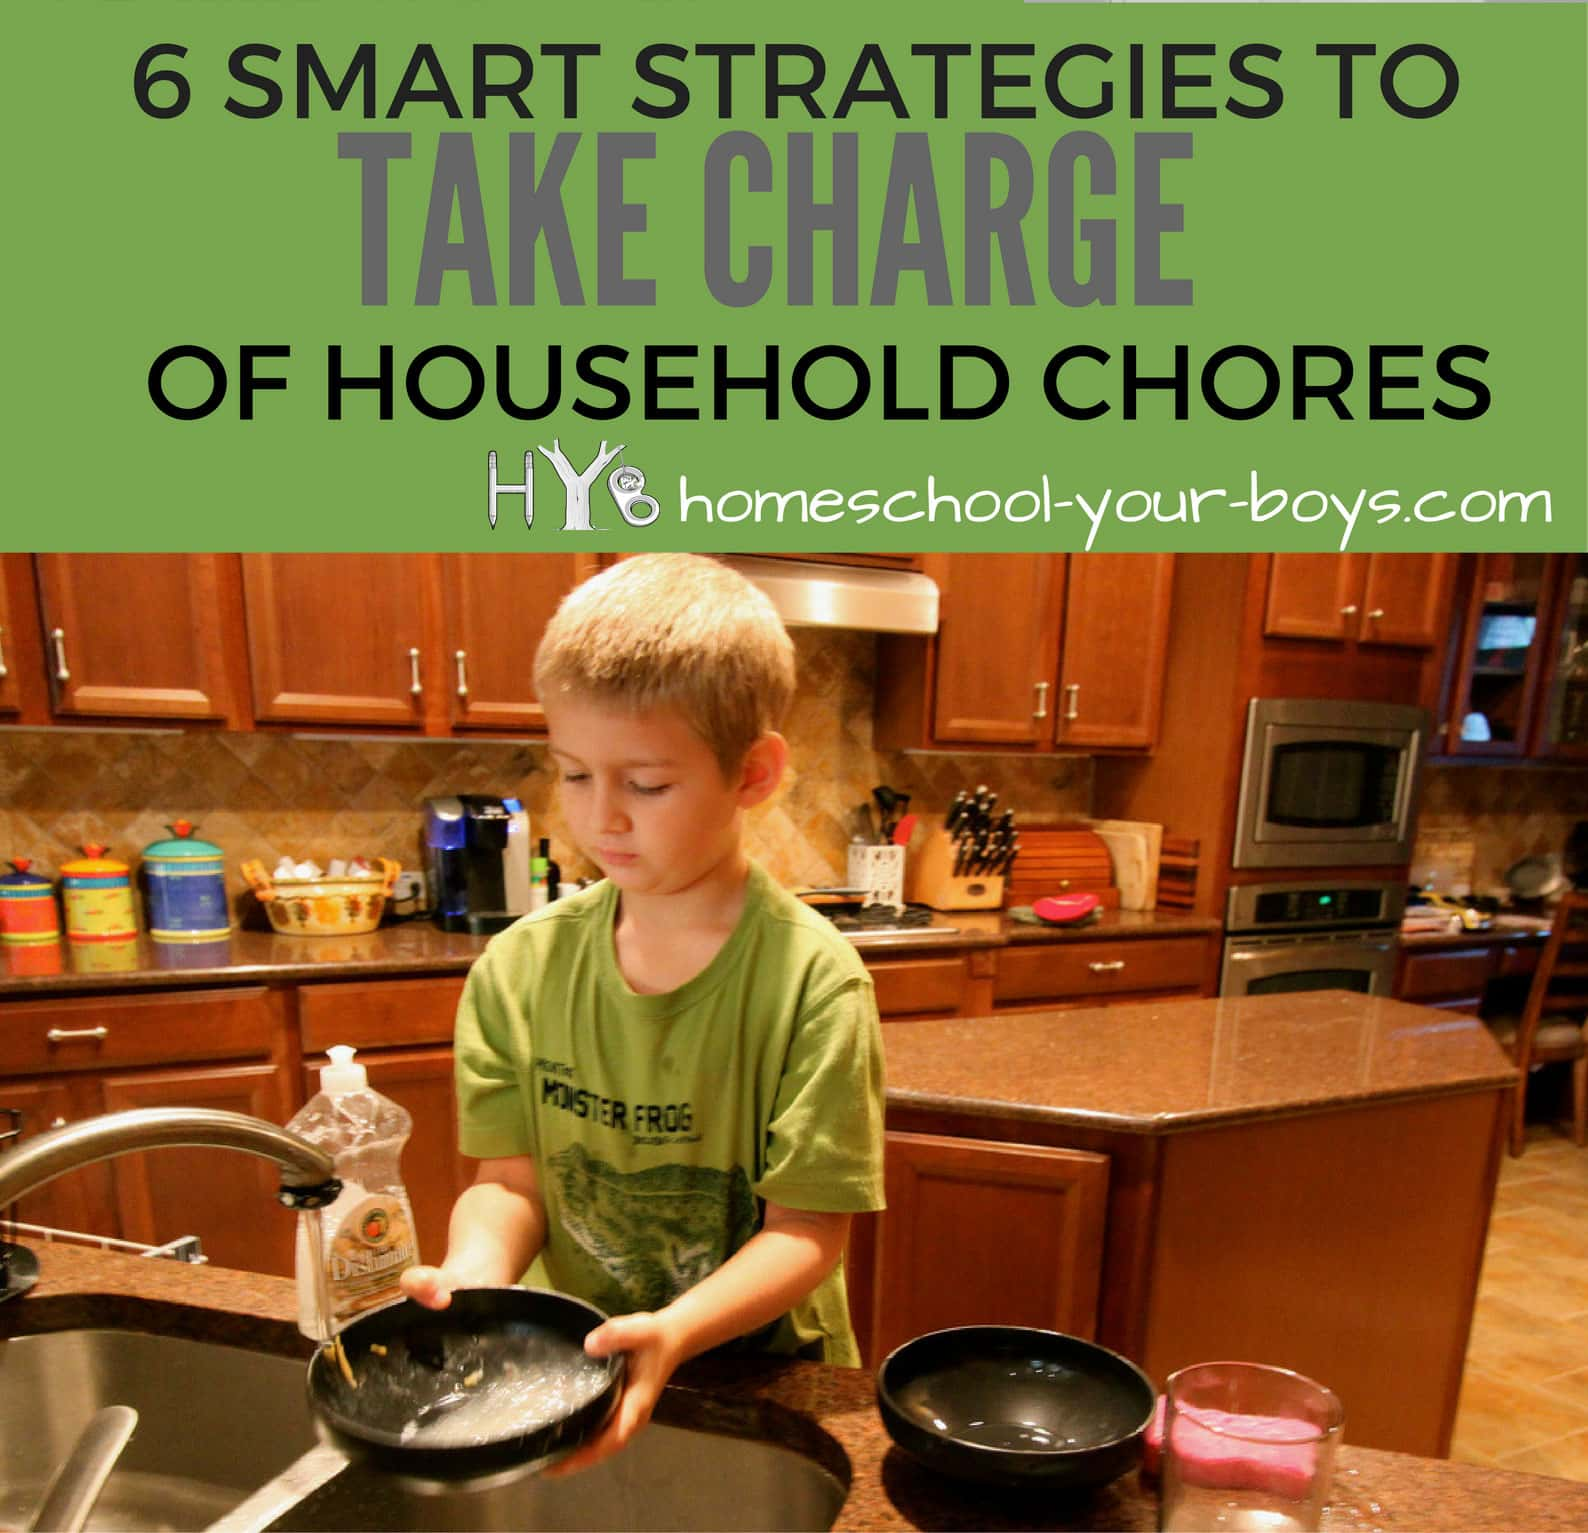 6 Smart Strategies to Take Charge of Household Chores